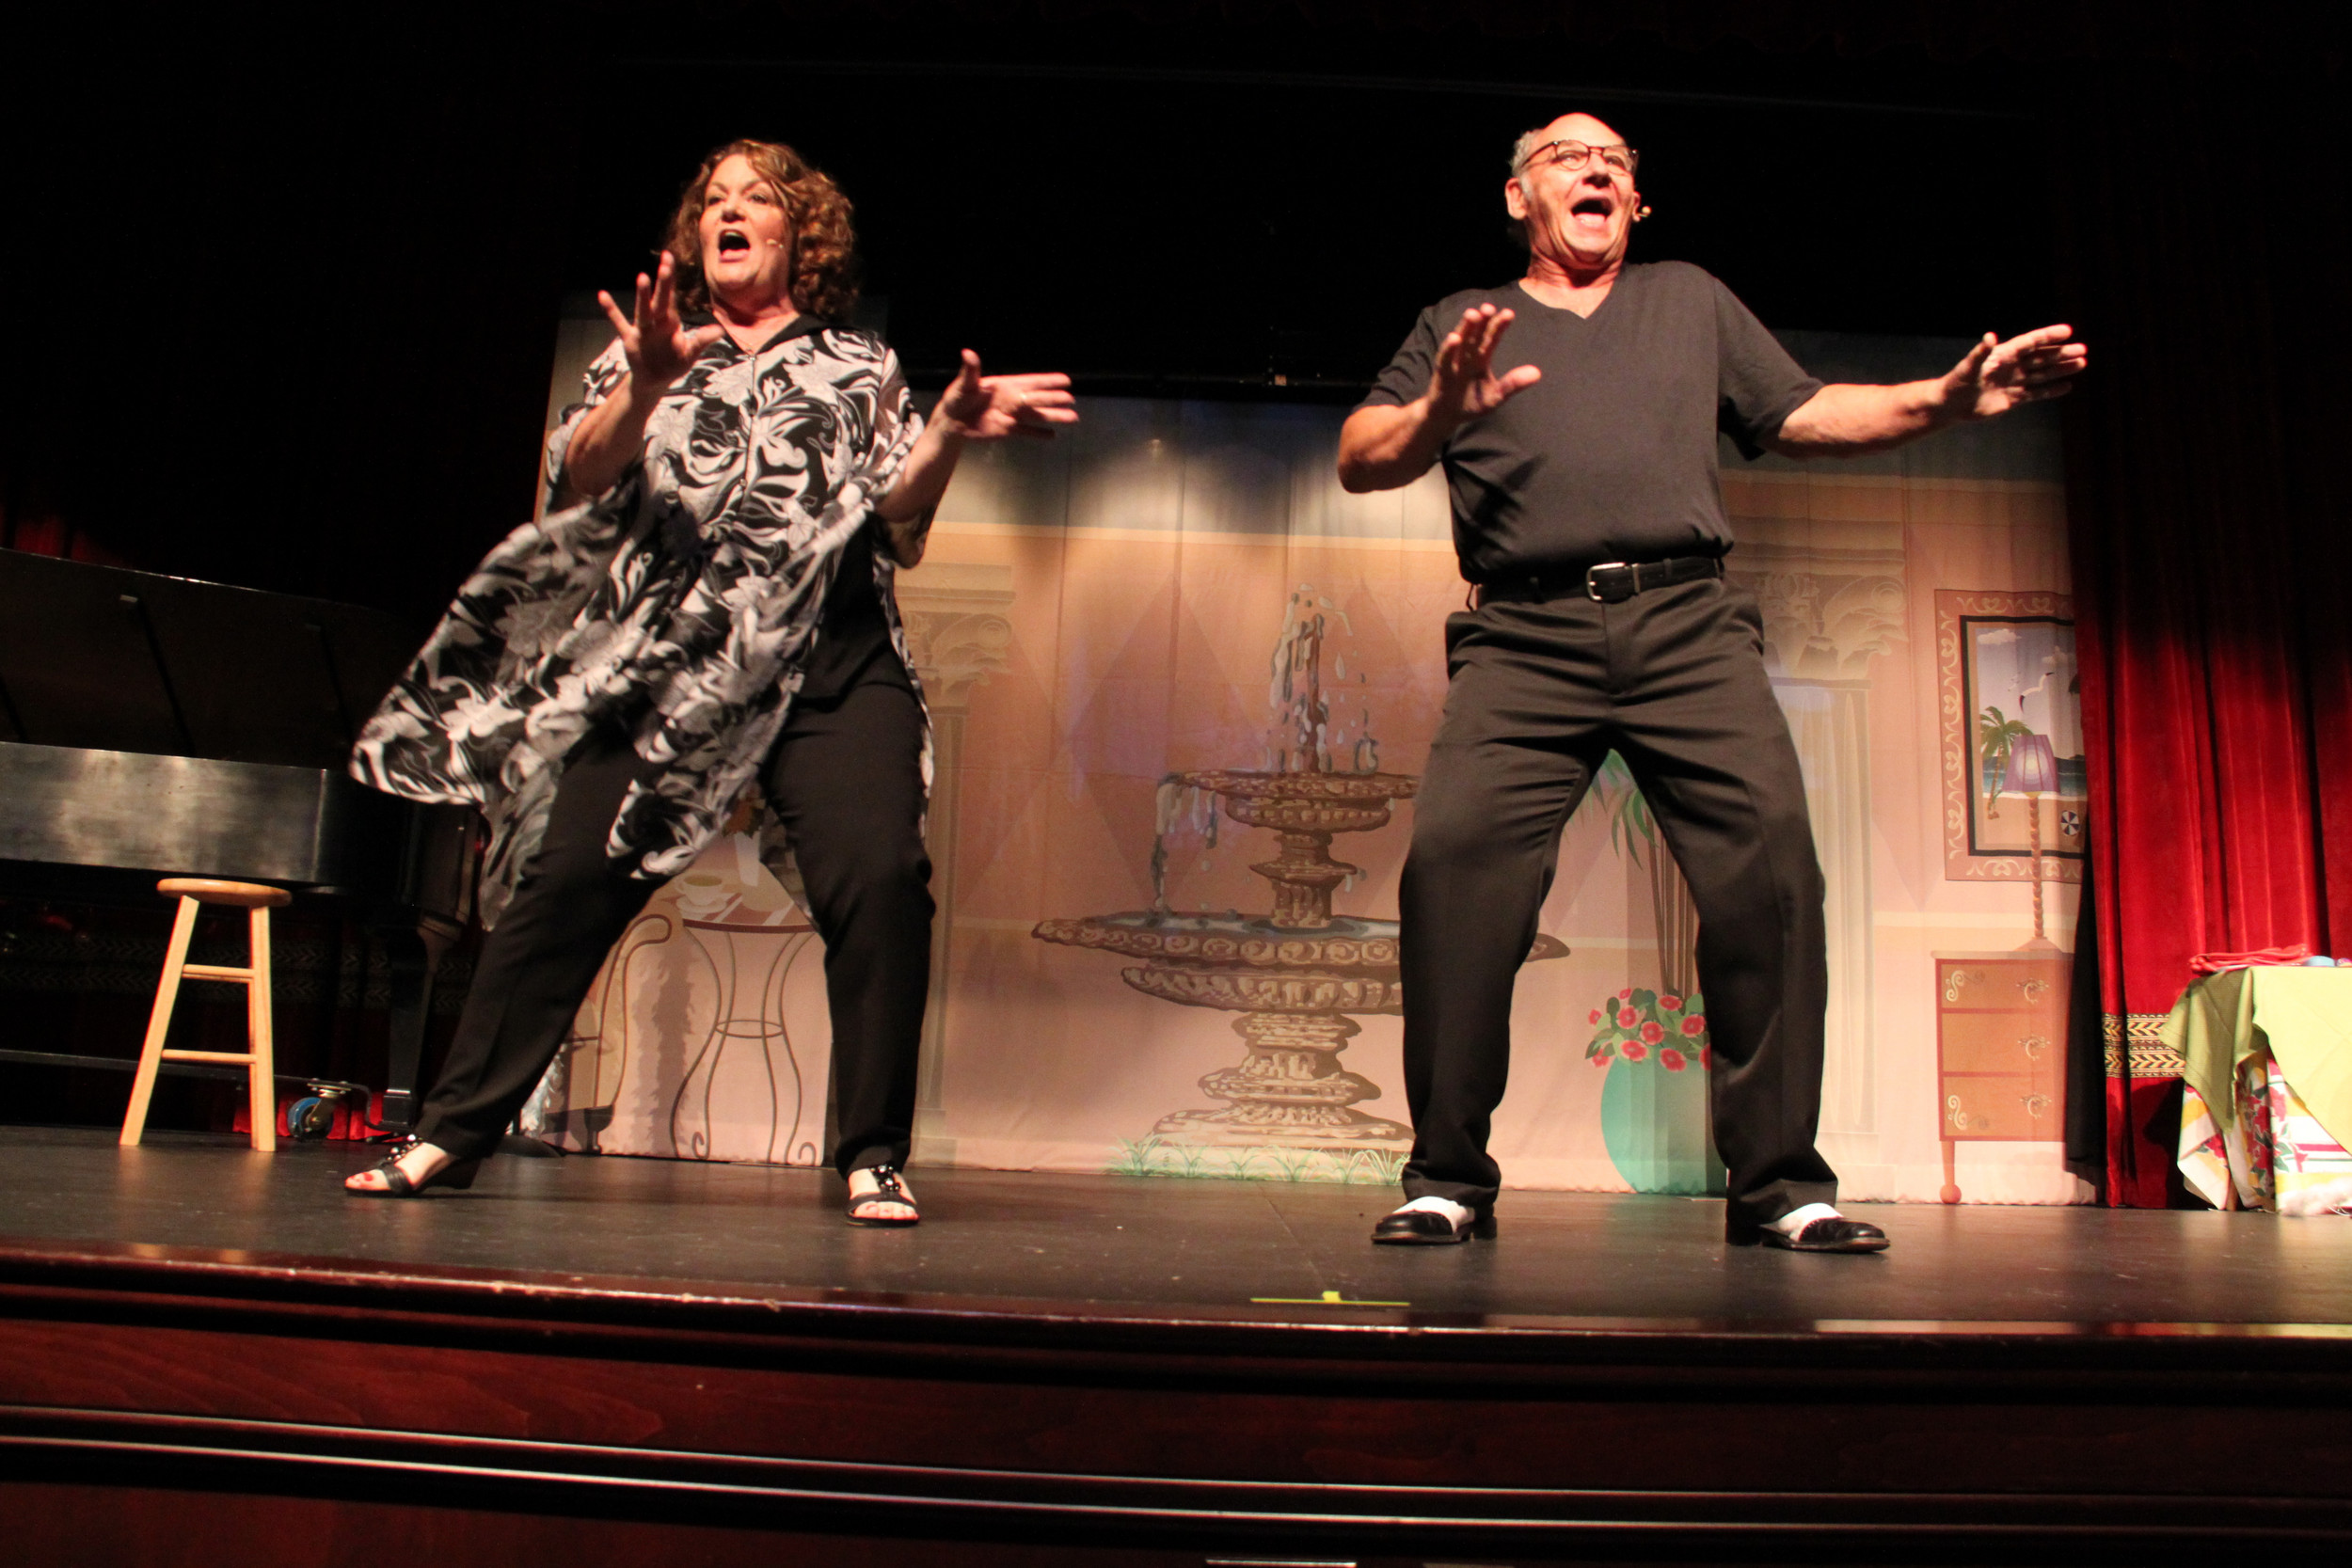 BWW Review: ASSISTED LIVING: THE MUSICAL Makes Retirement Look Fun